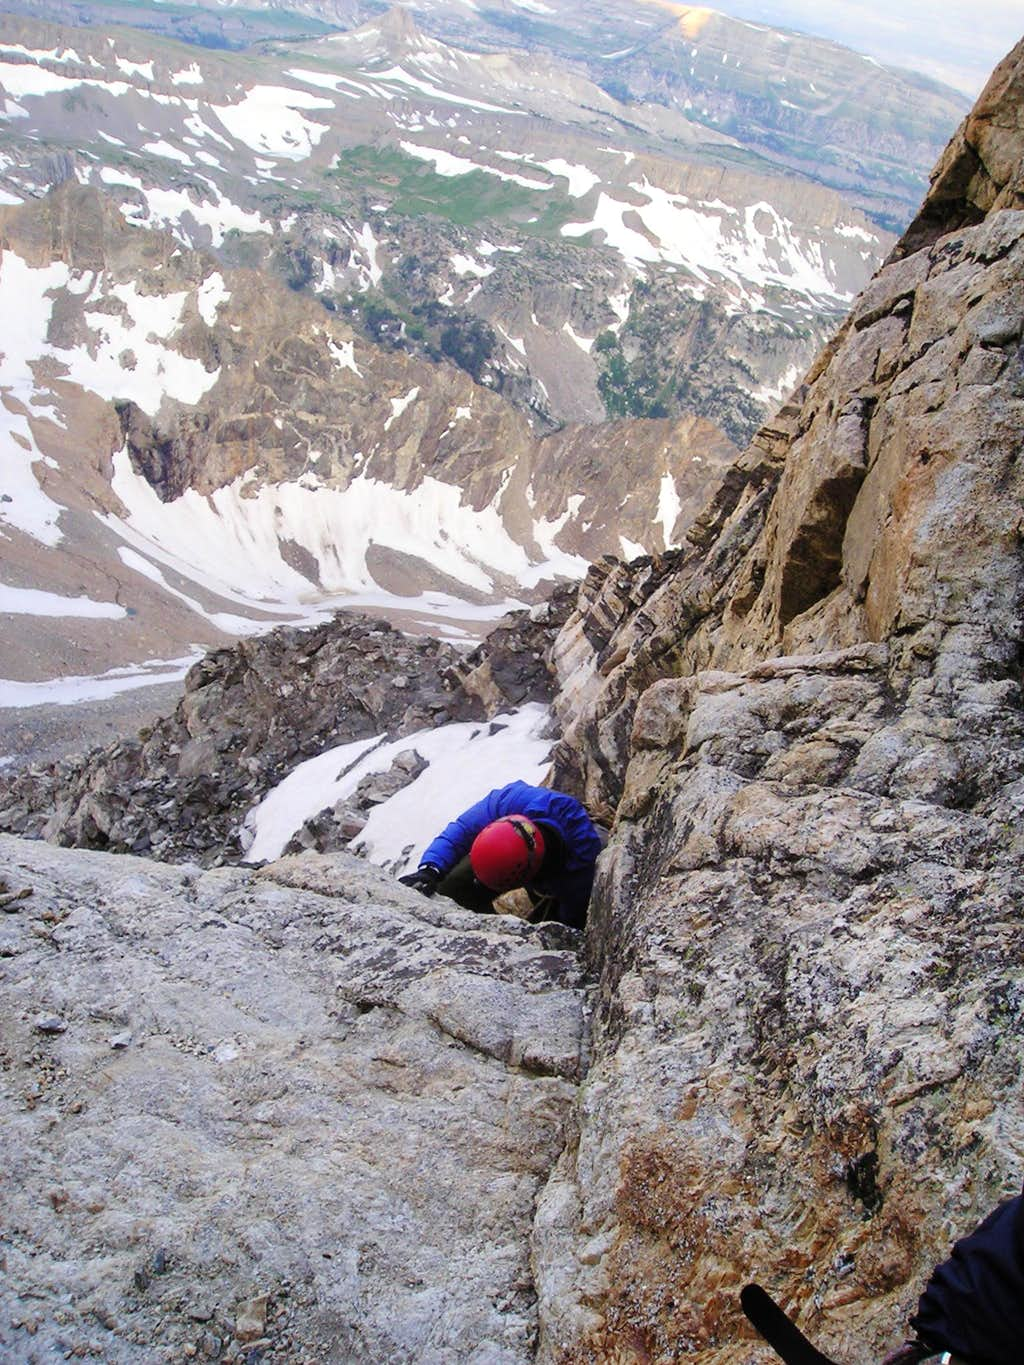 Forrest climbing his way up the Owen Spaulding route of the Grand Teton